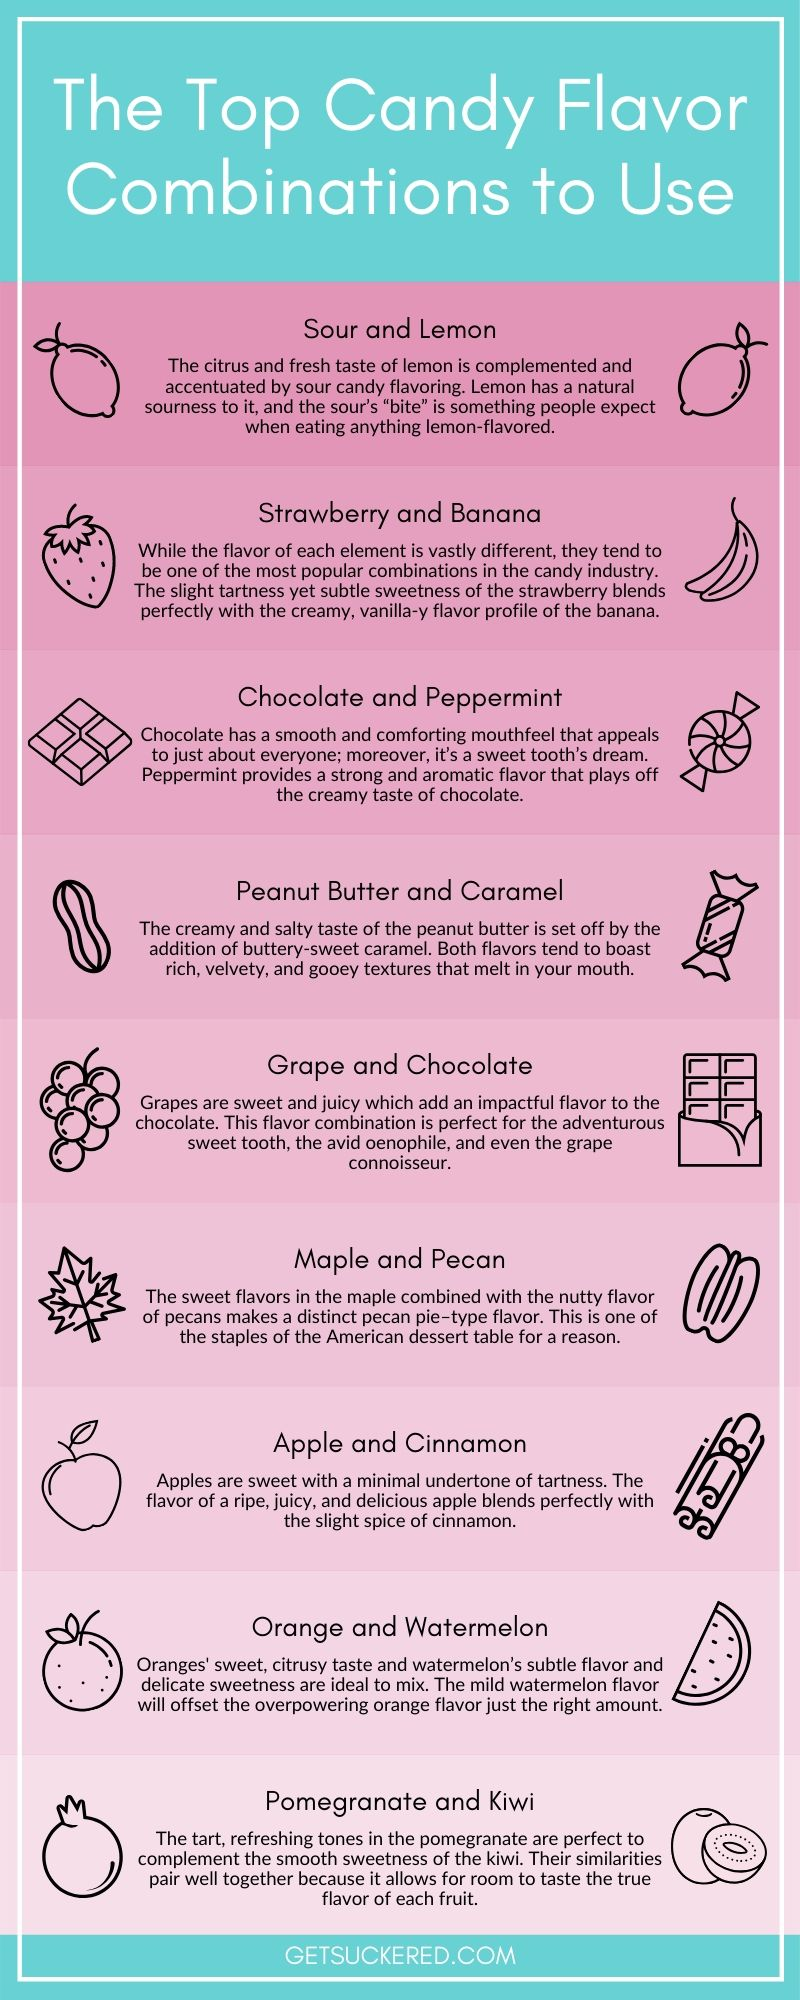 The Top Candy Flavor Combinations to Use